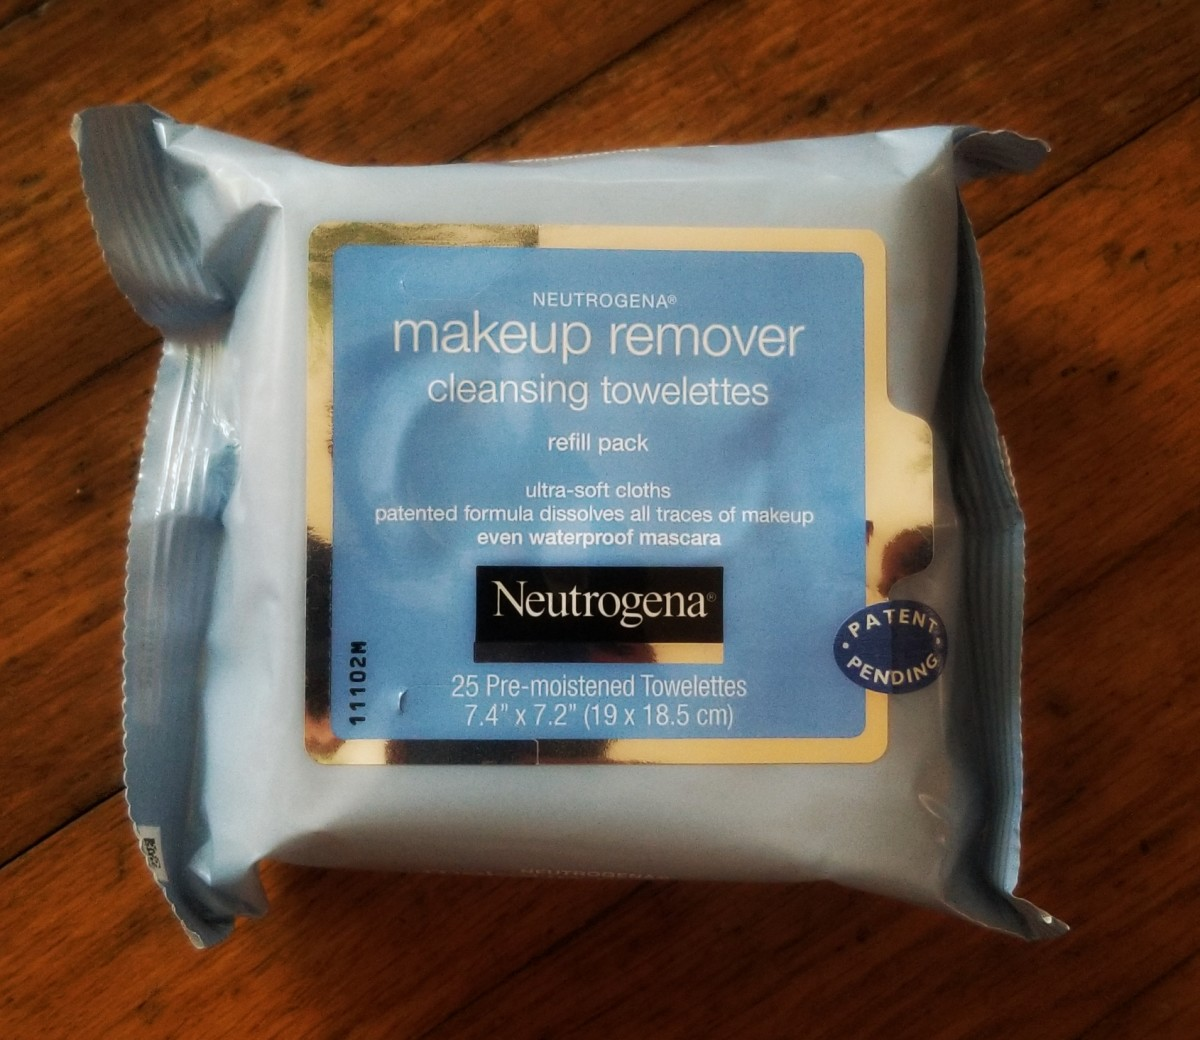 The Neutrogena towelettes are my favorite!